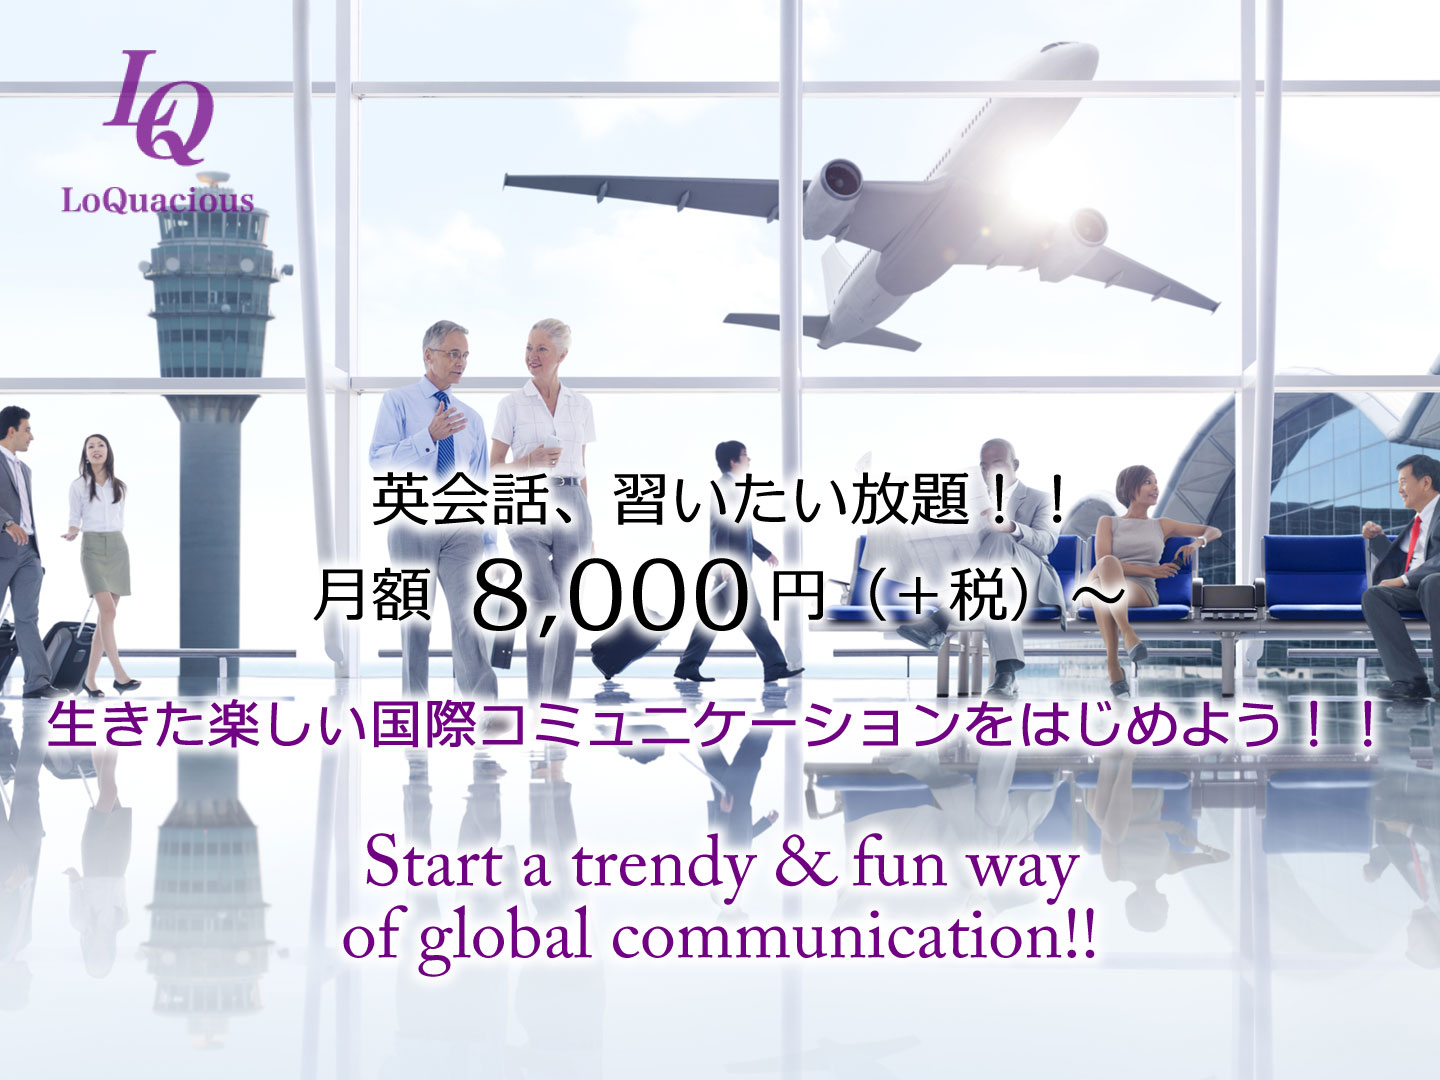 Let's start a trendy & fun way of global communication!!